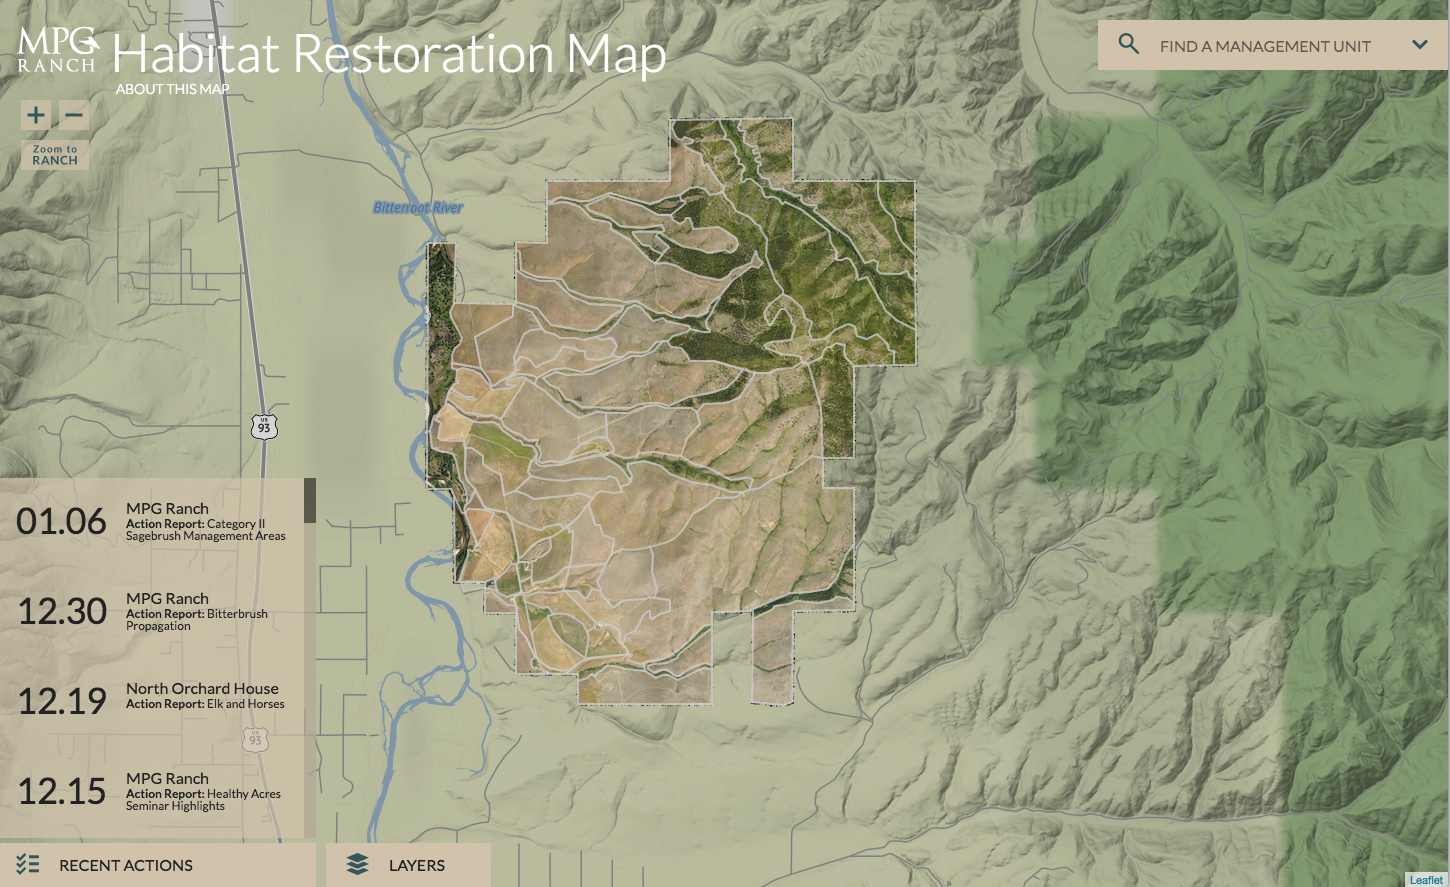 Tracking habitat restoration in western Montana with maps and data ...